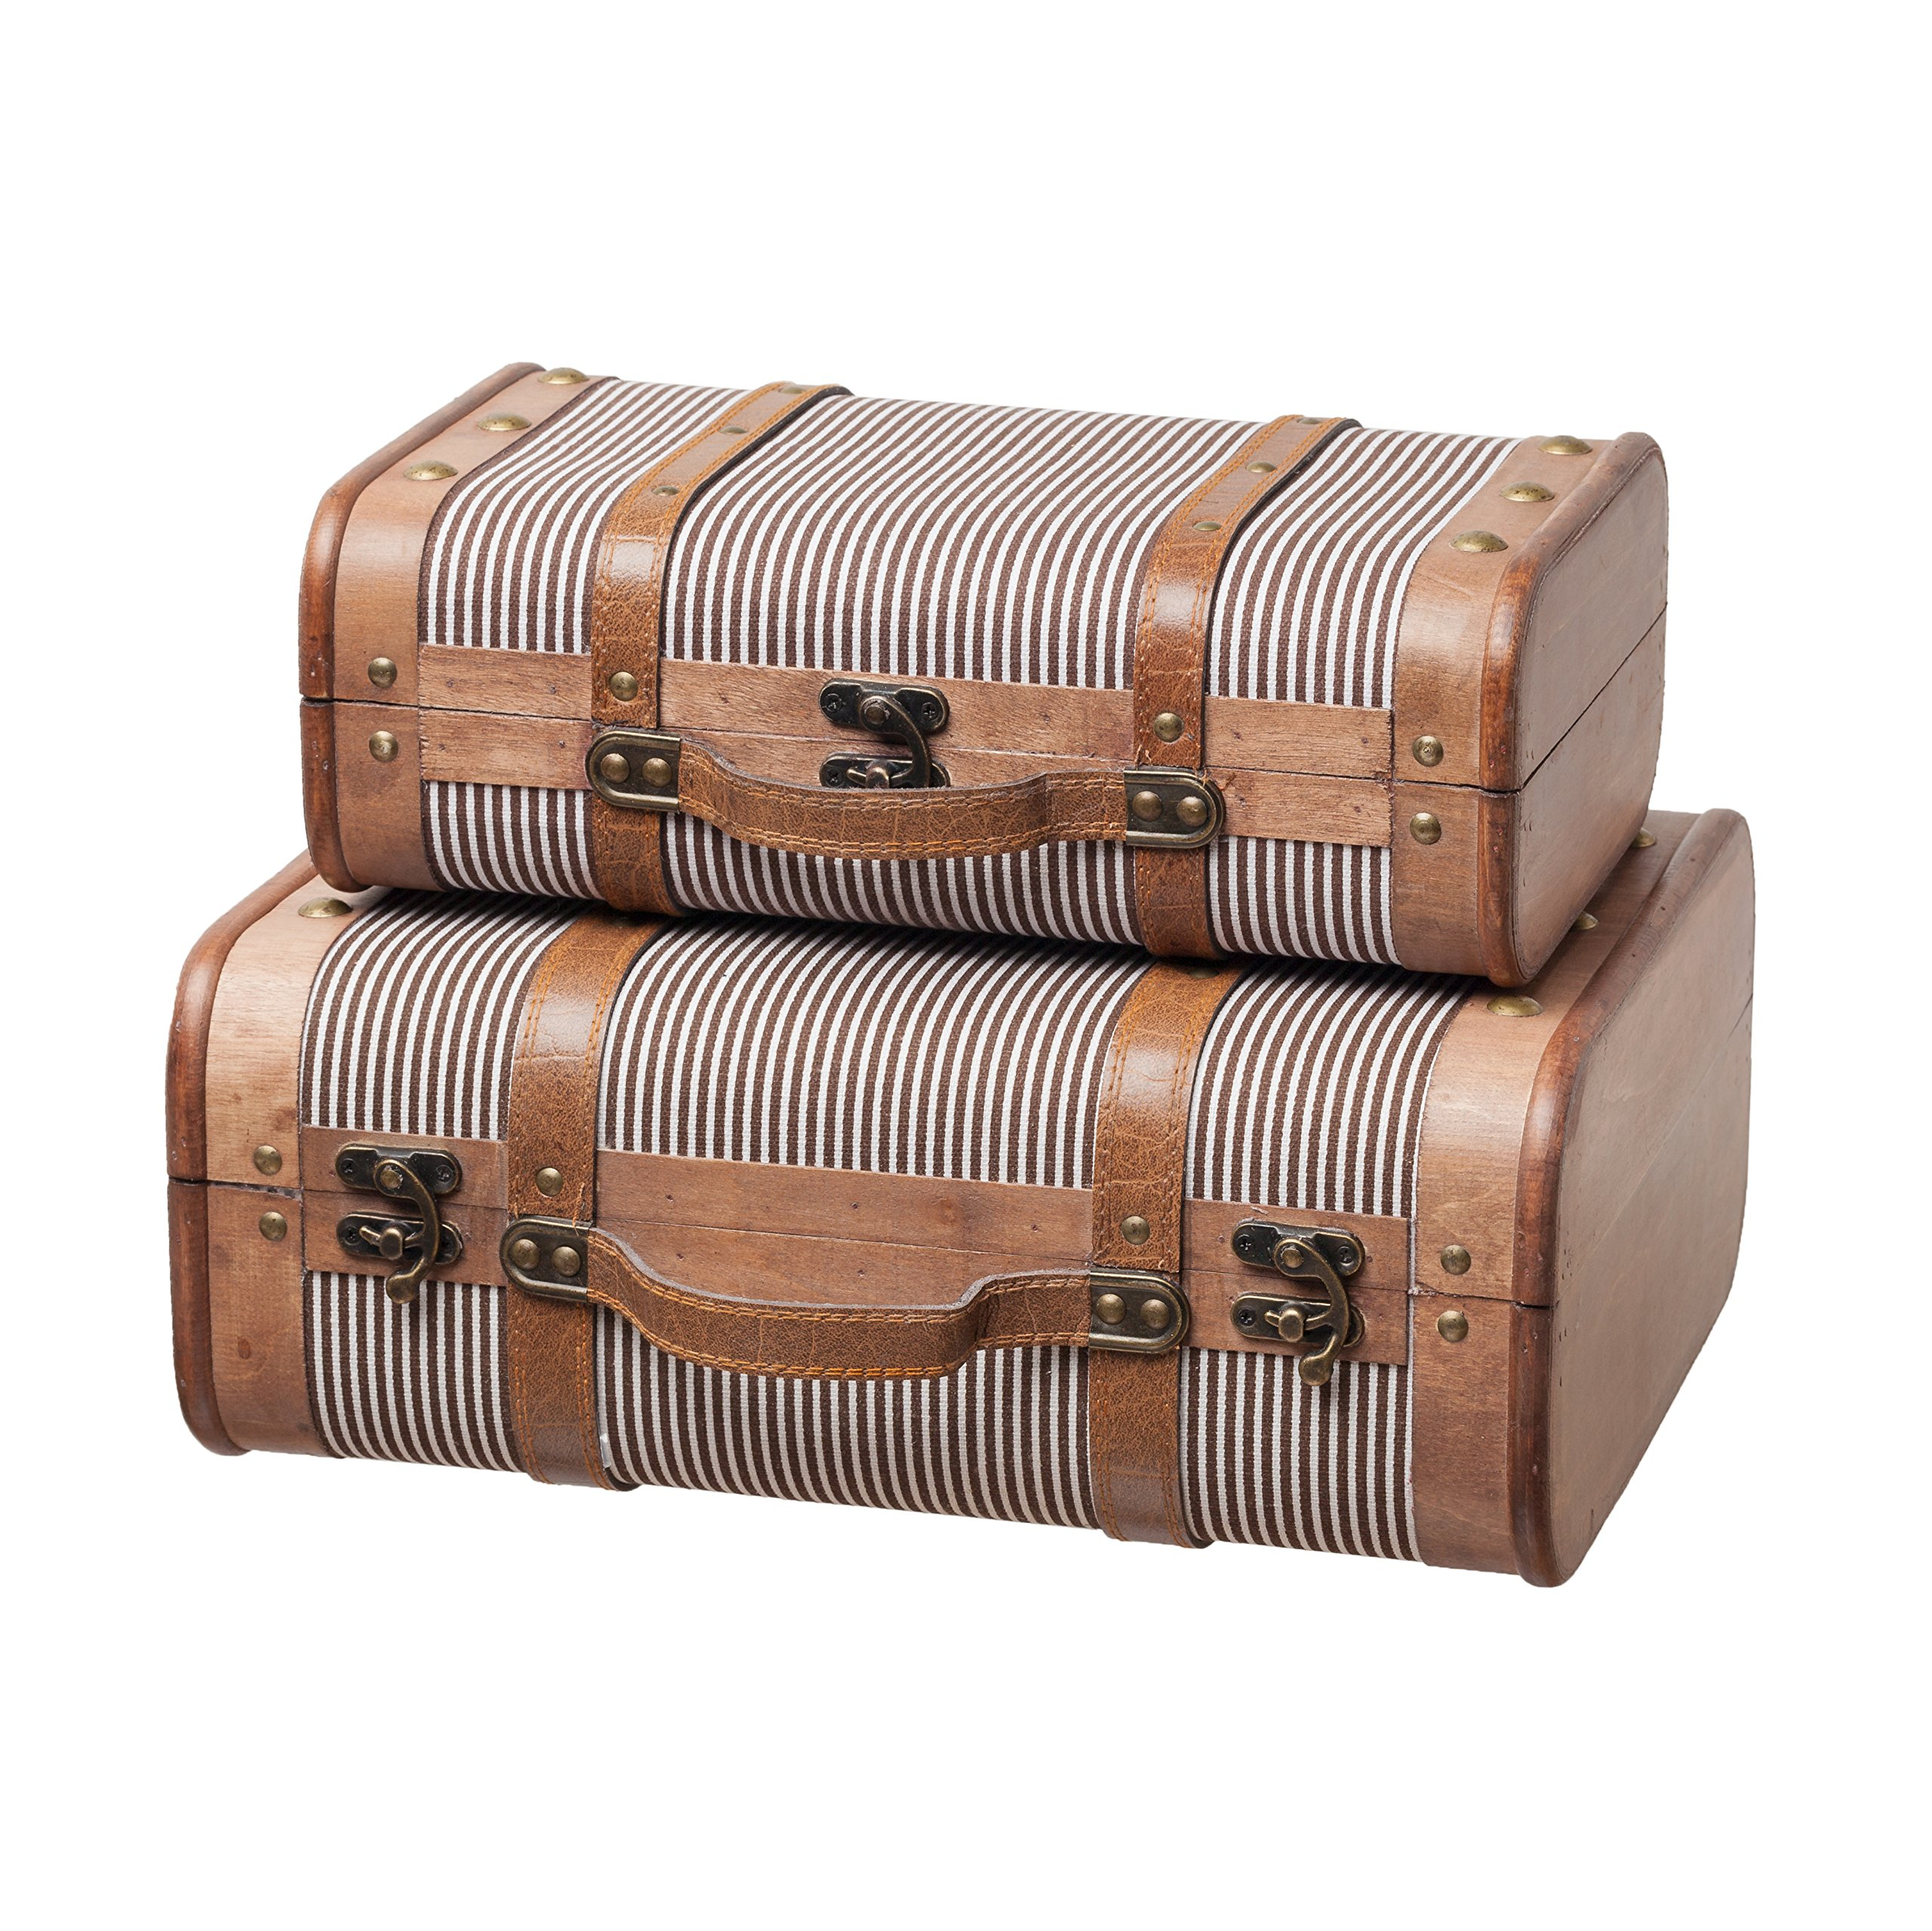 SLPR Decorative Suitcase with Straps (Set of 2, Striped) | Old-Fashioned Antique Vintage Style Nesting Trunks for Shelf Home Decor Birthday Parties Wedding Decoration Displays Crafts Photoshoots by SLPR